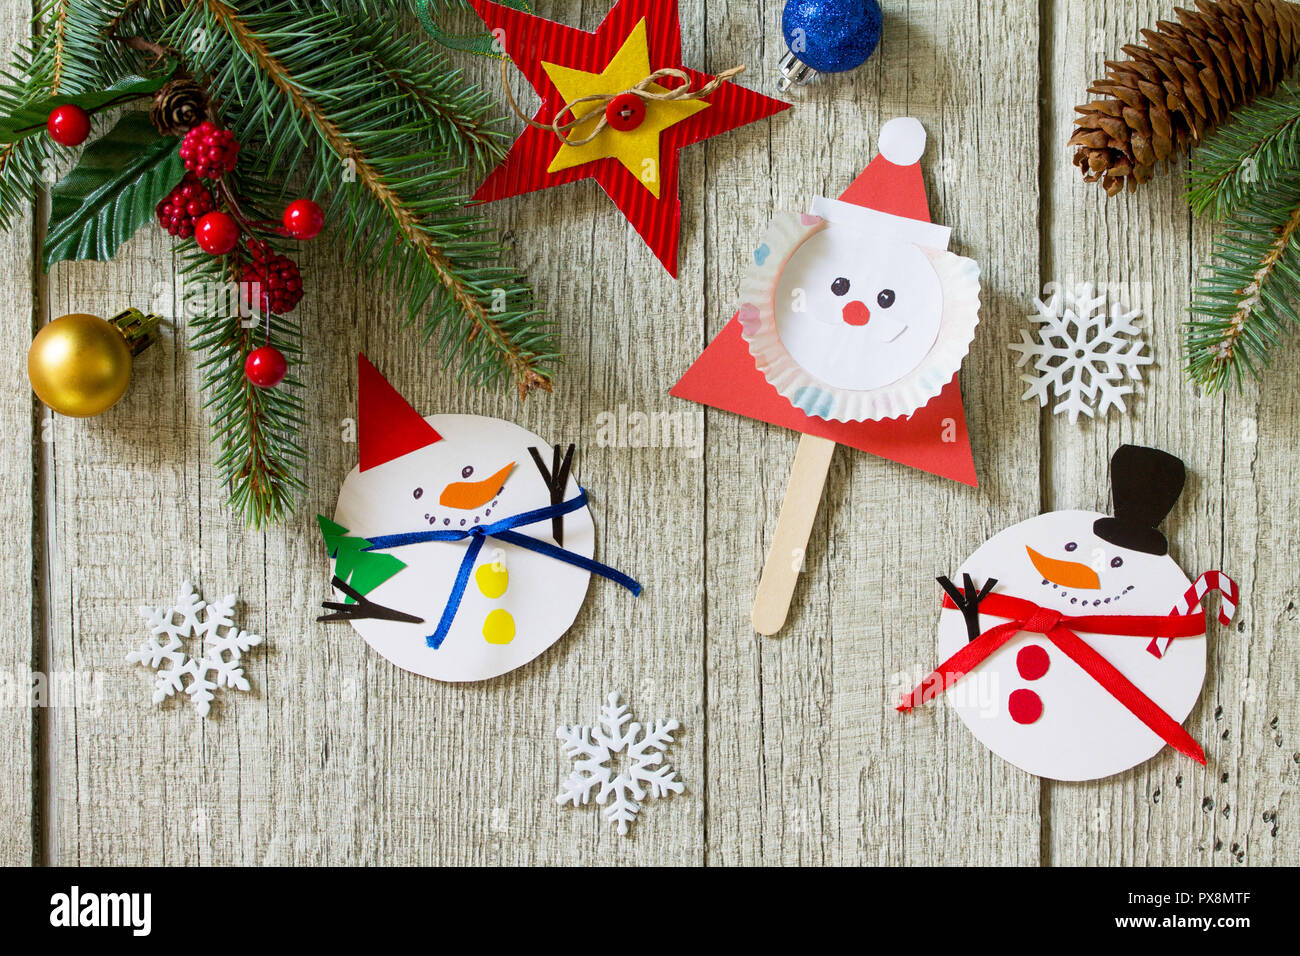 Christmas merry gift on wooden table - Santa and snowman toys ...